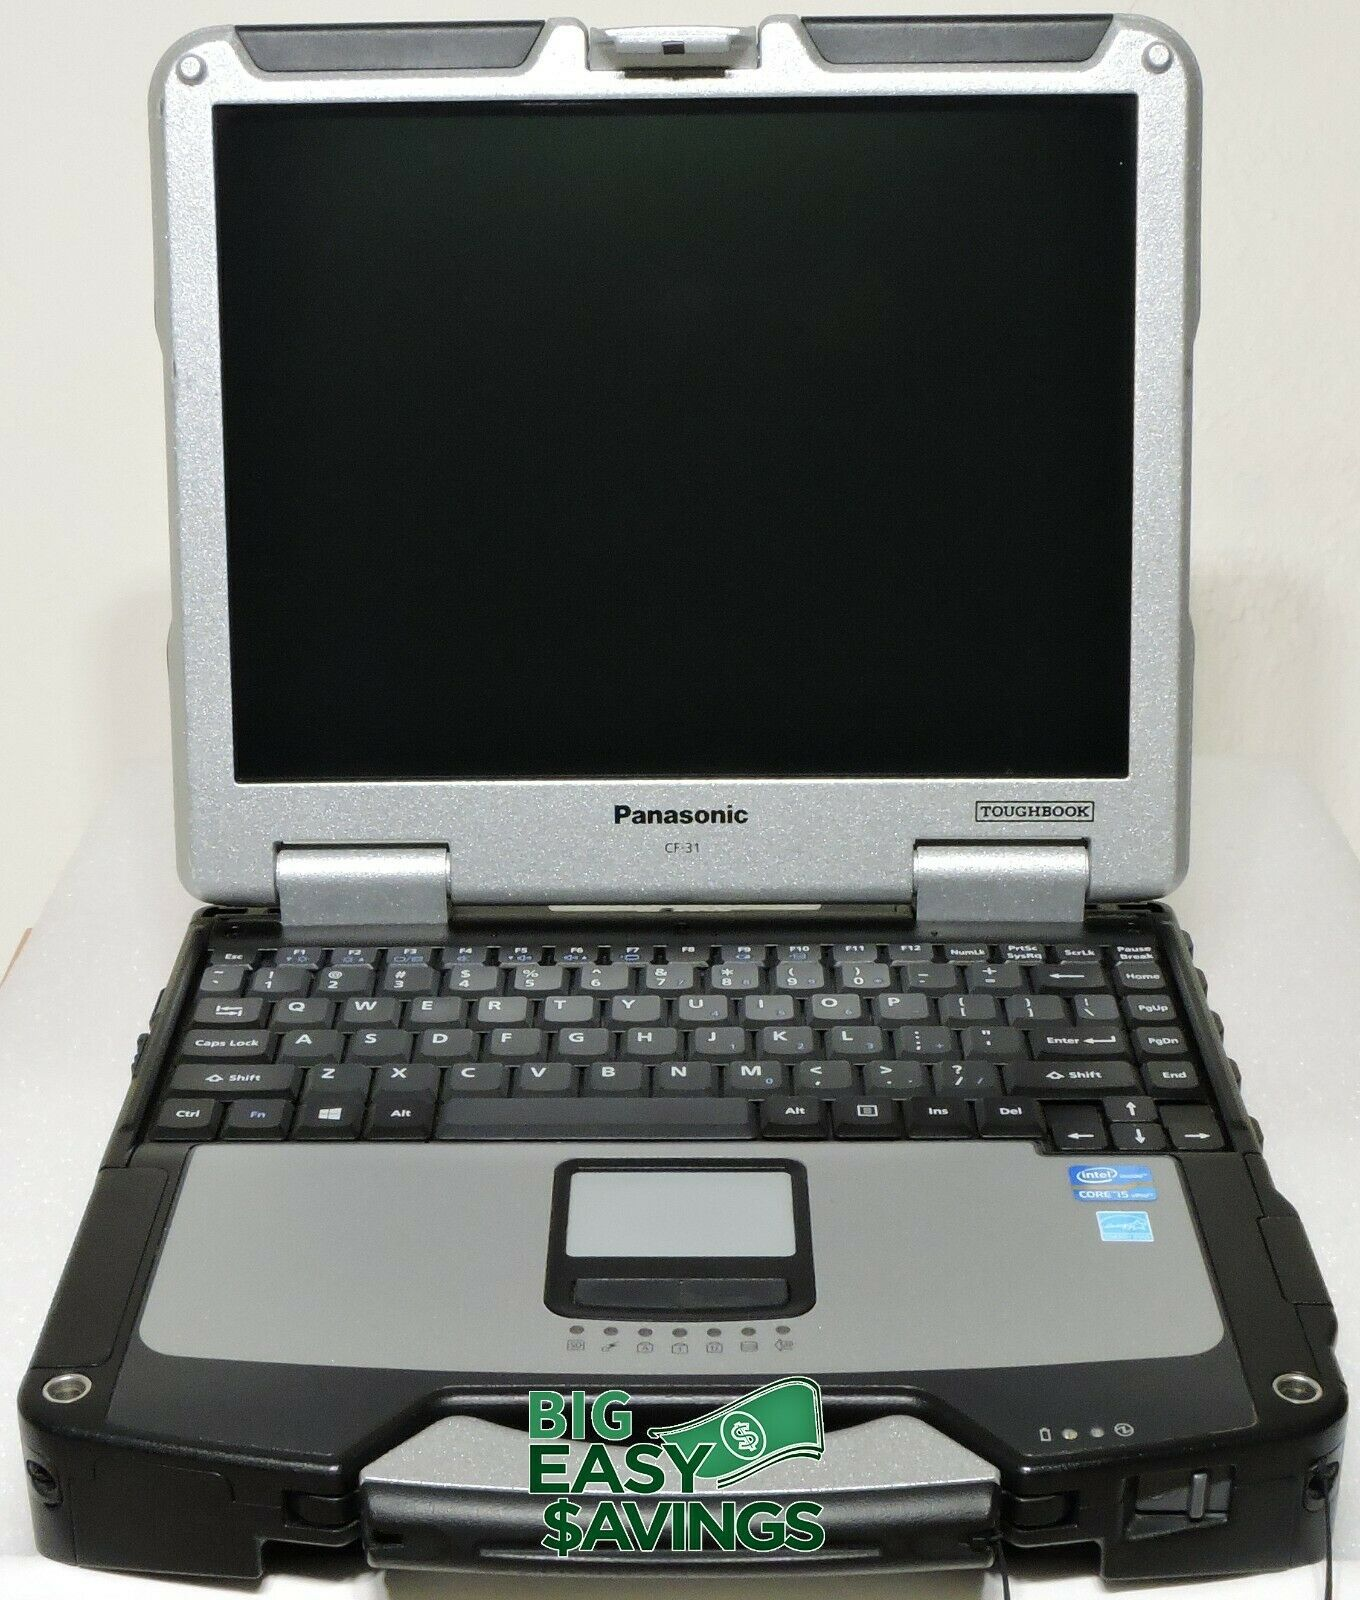 Primary image for Panasonic Toughbook CF-31 MK4 Rugged Intel Core i5-3340M 2.70GHz 8GB 500GB Touch